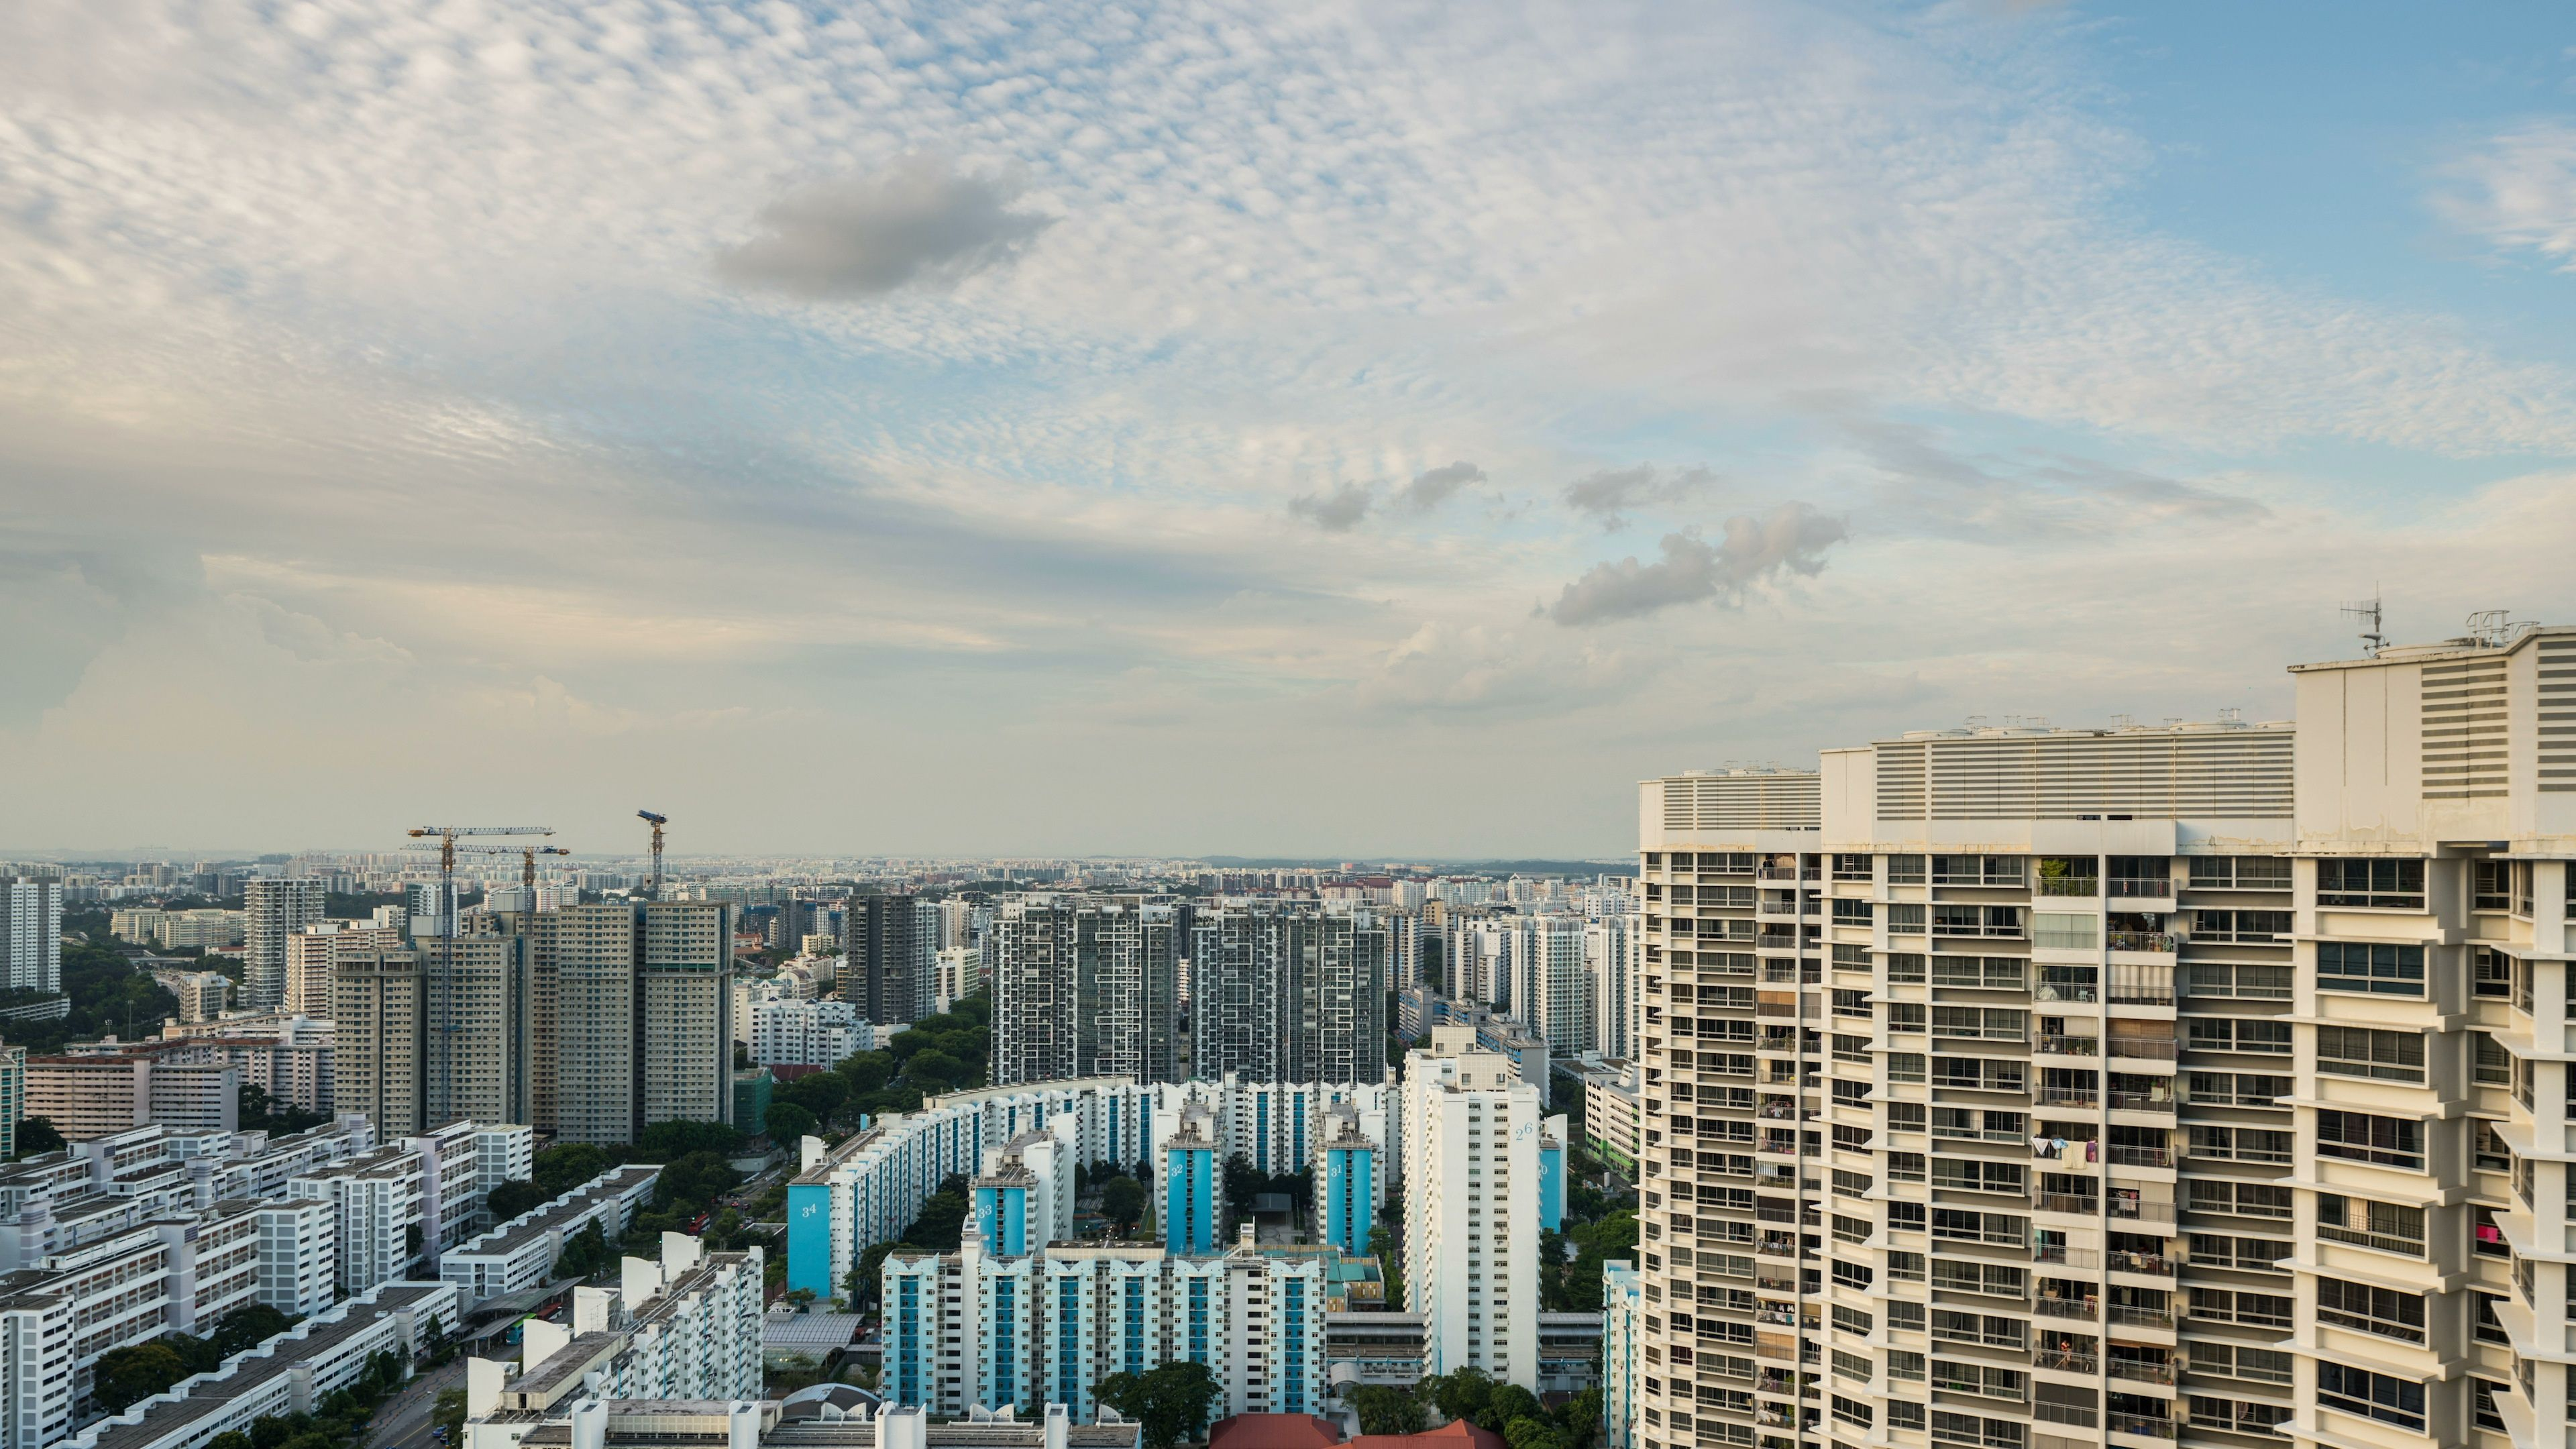 4K day timelapse of residential district in Singapore Stock Footage resid